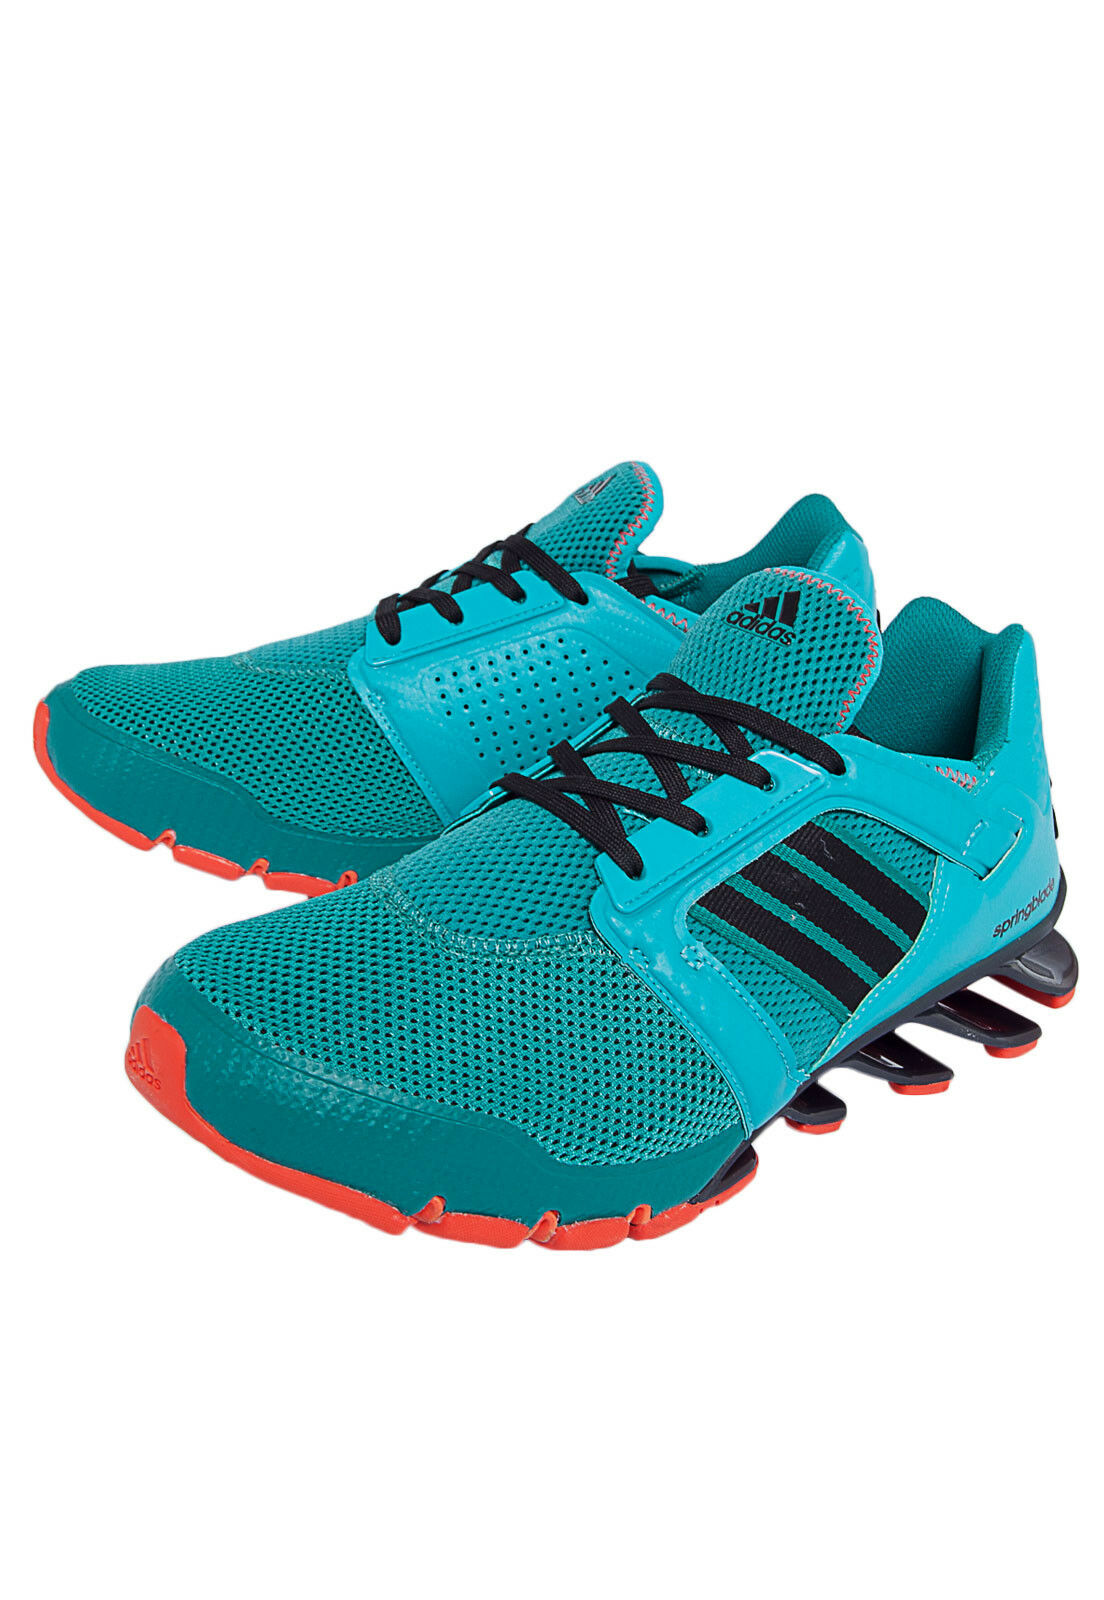 Adidas Springblade E Force Schuhe M AF6804 Lauf Running Schuhe Force Gr:42 Performance 47ab06